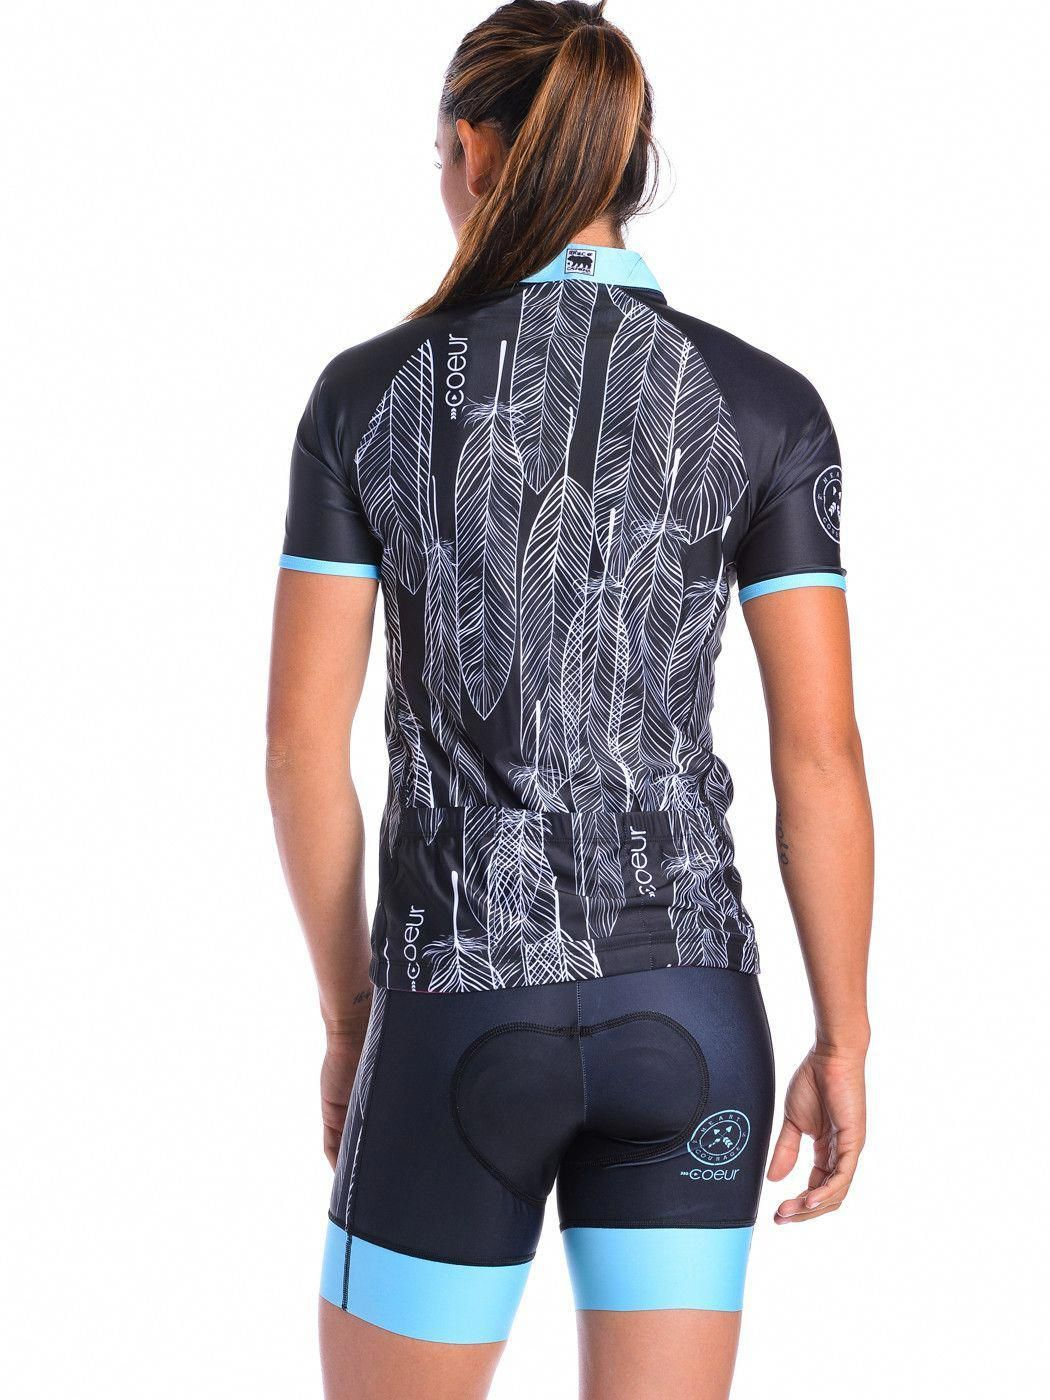 Types Of Bikes Women S Cycling Jersey Cycling Outfit